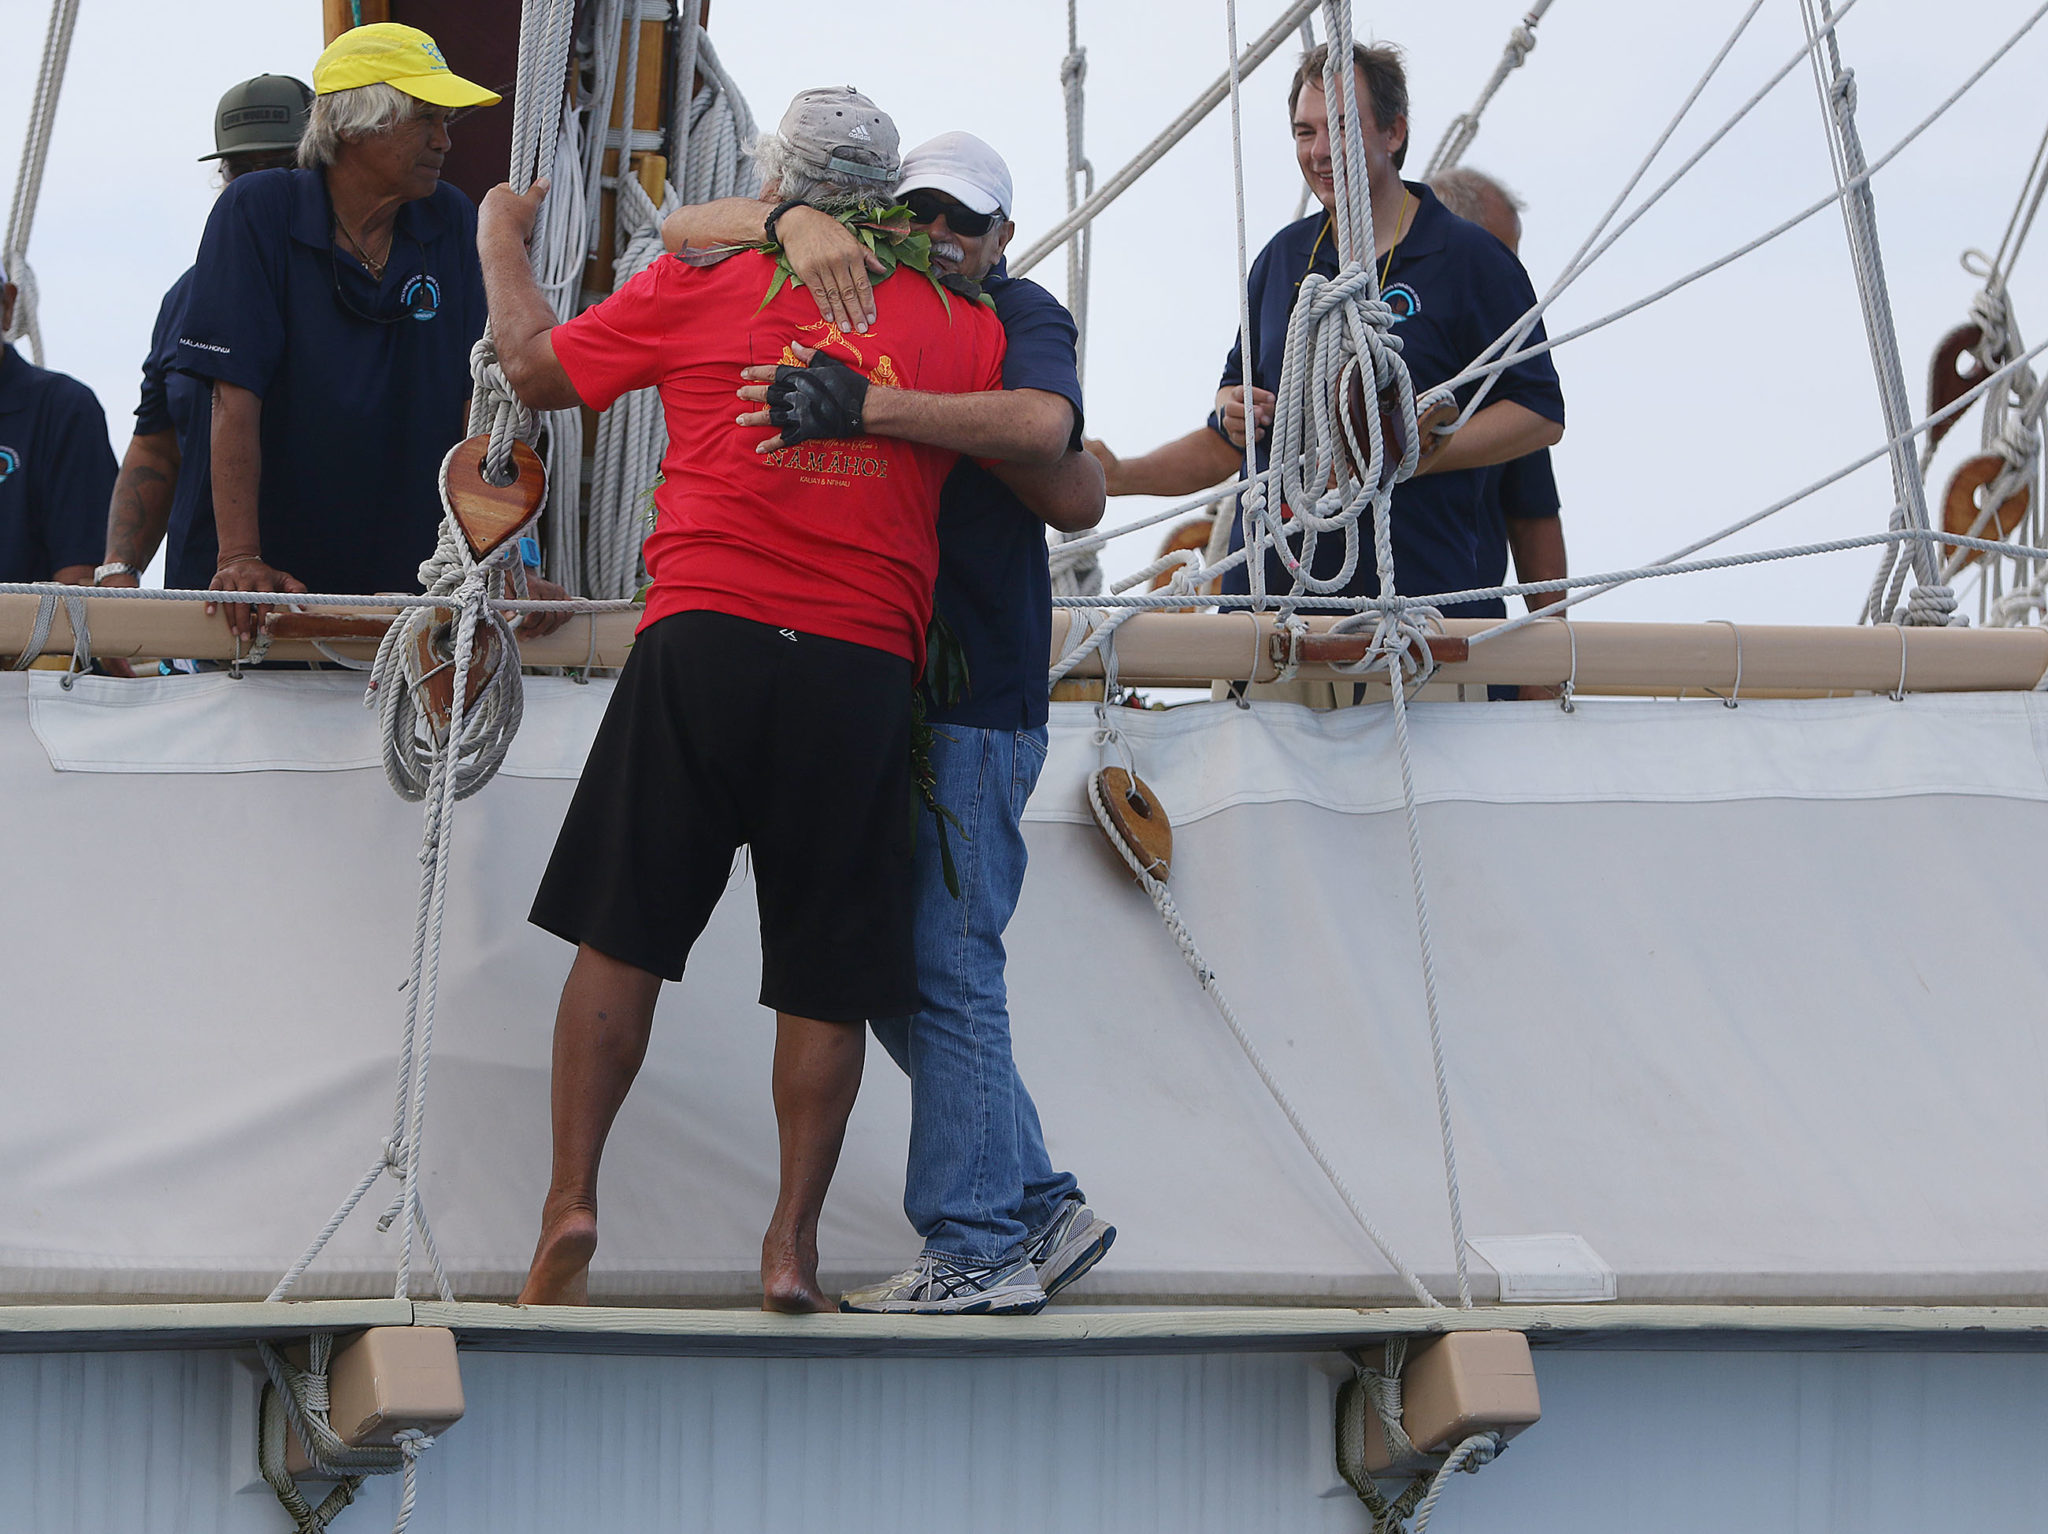 <p>Hokulea skipper Billy Richards, in the white hat, gets a hug as the replica of a Polynesian wa&#8217;a — a double-hulled canoe, approaches shore. / Cory Lum</p>